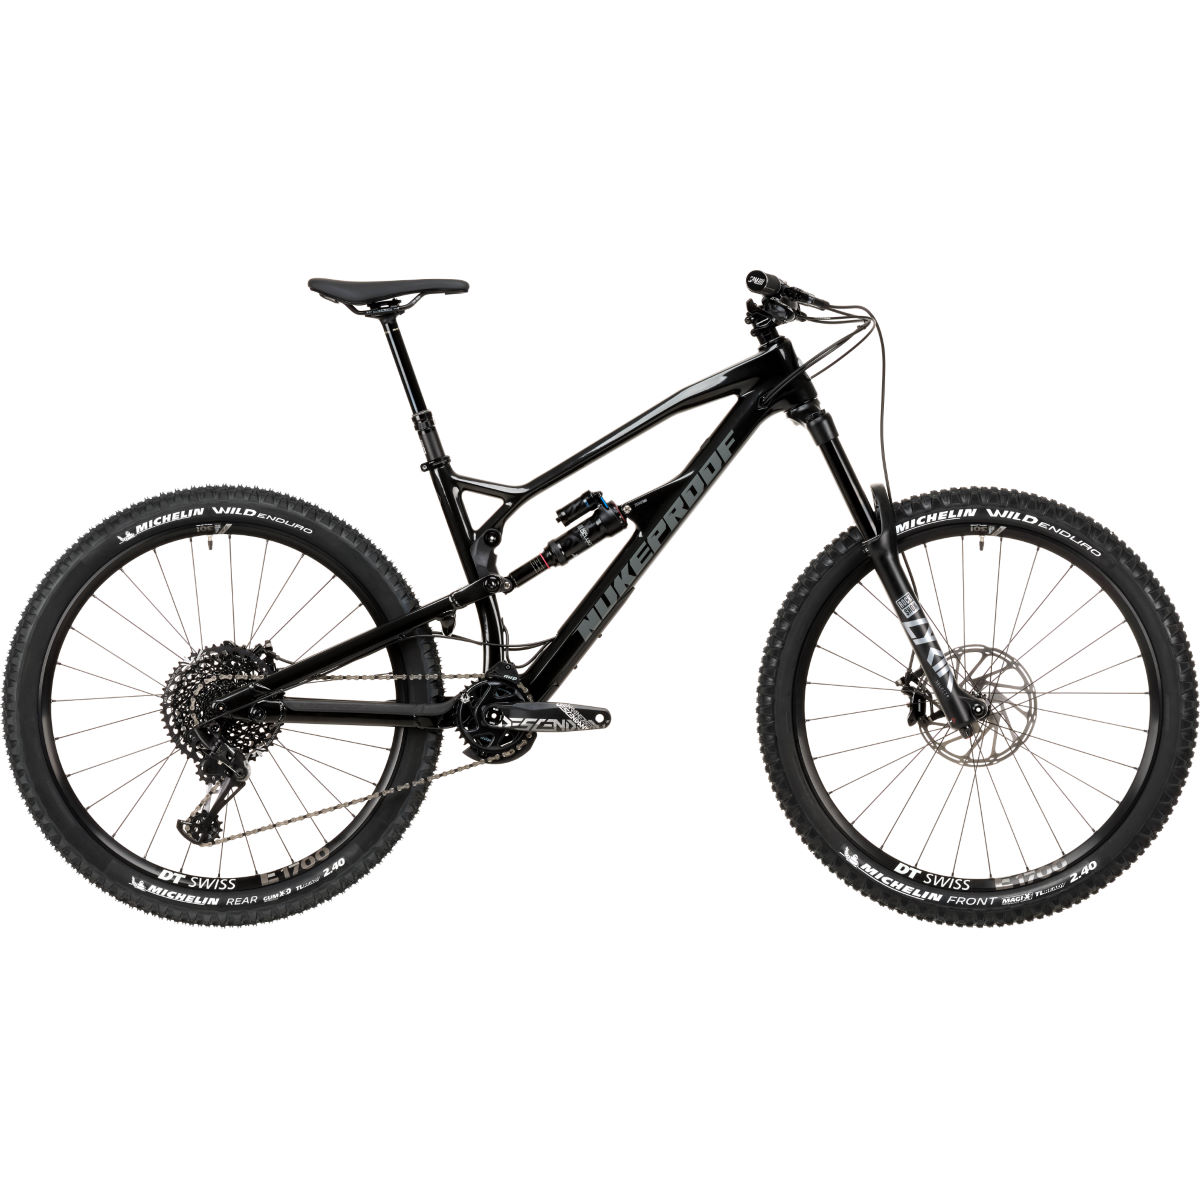 Nukeproof Nukeproof Mega 275 Pro Carbon Bike (GX Eagle - 2020)   Full Suspension Mountain Bikes